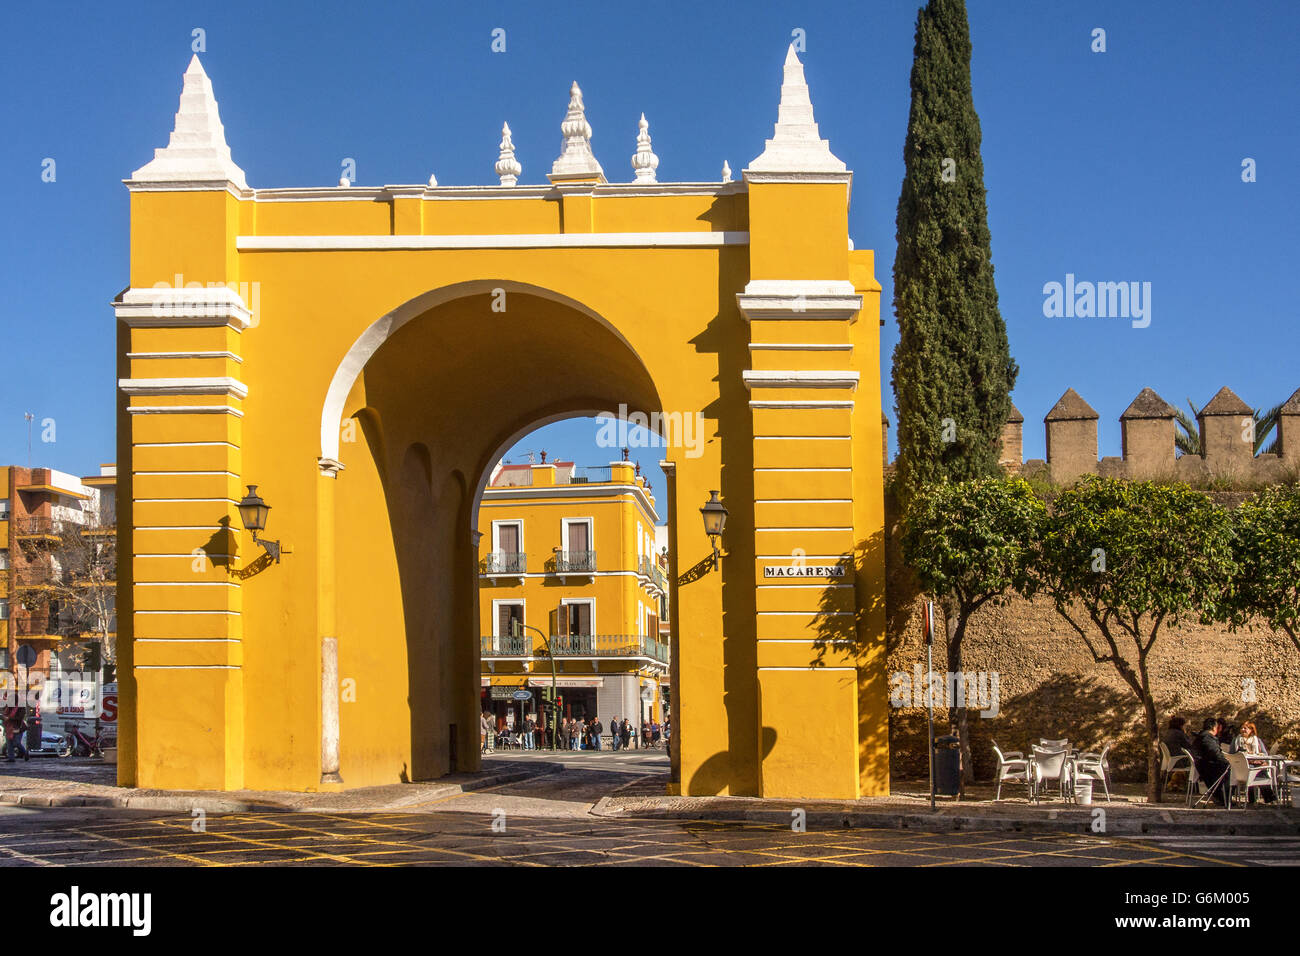 SEVILLE, SPAIN:  Puerta de la Macarena (Macarena Gate) in the city walls - Stock Image